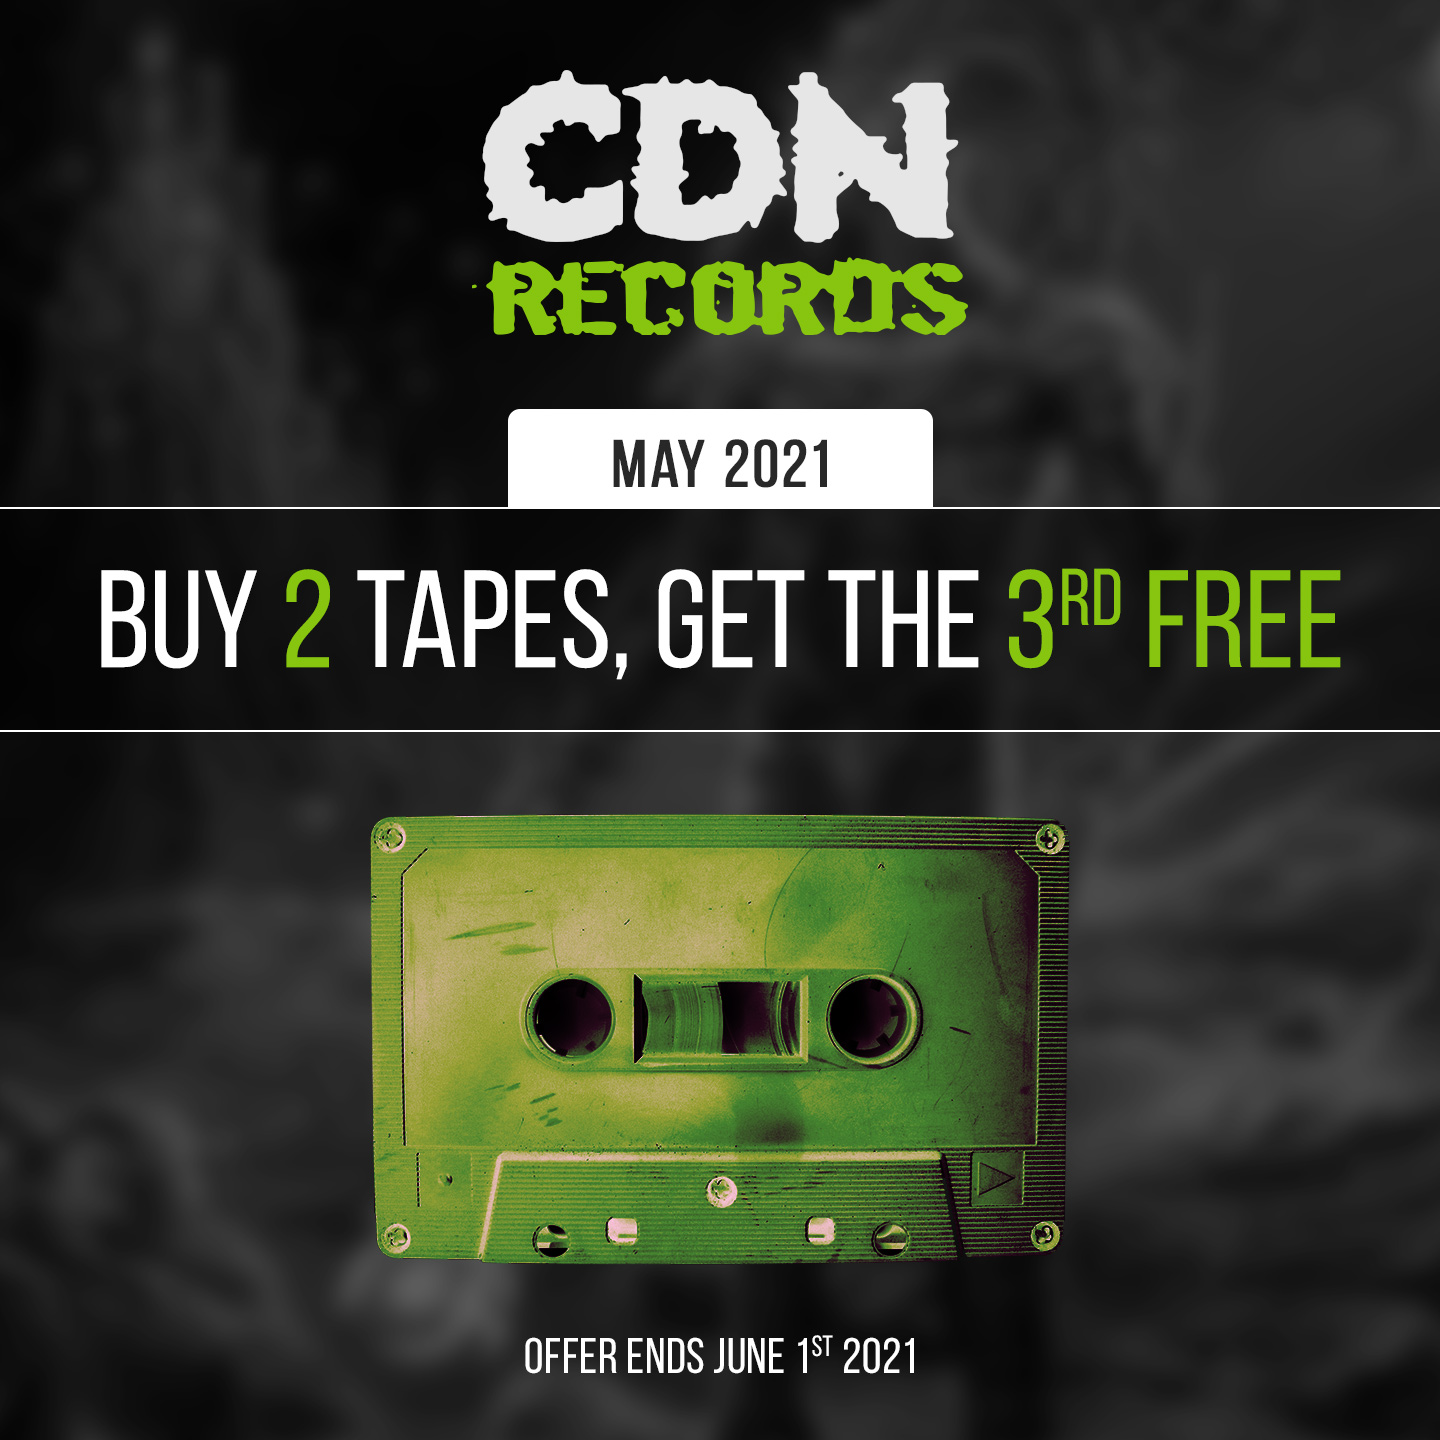 Promo graphic for May tapes deal